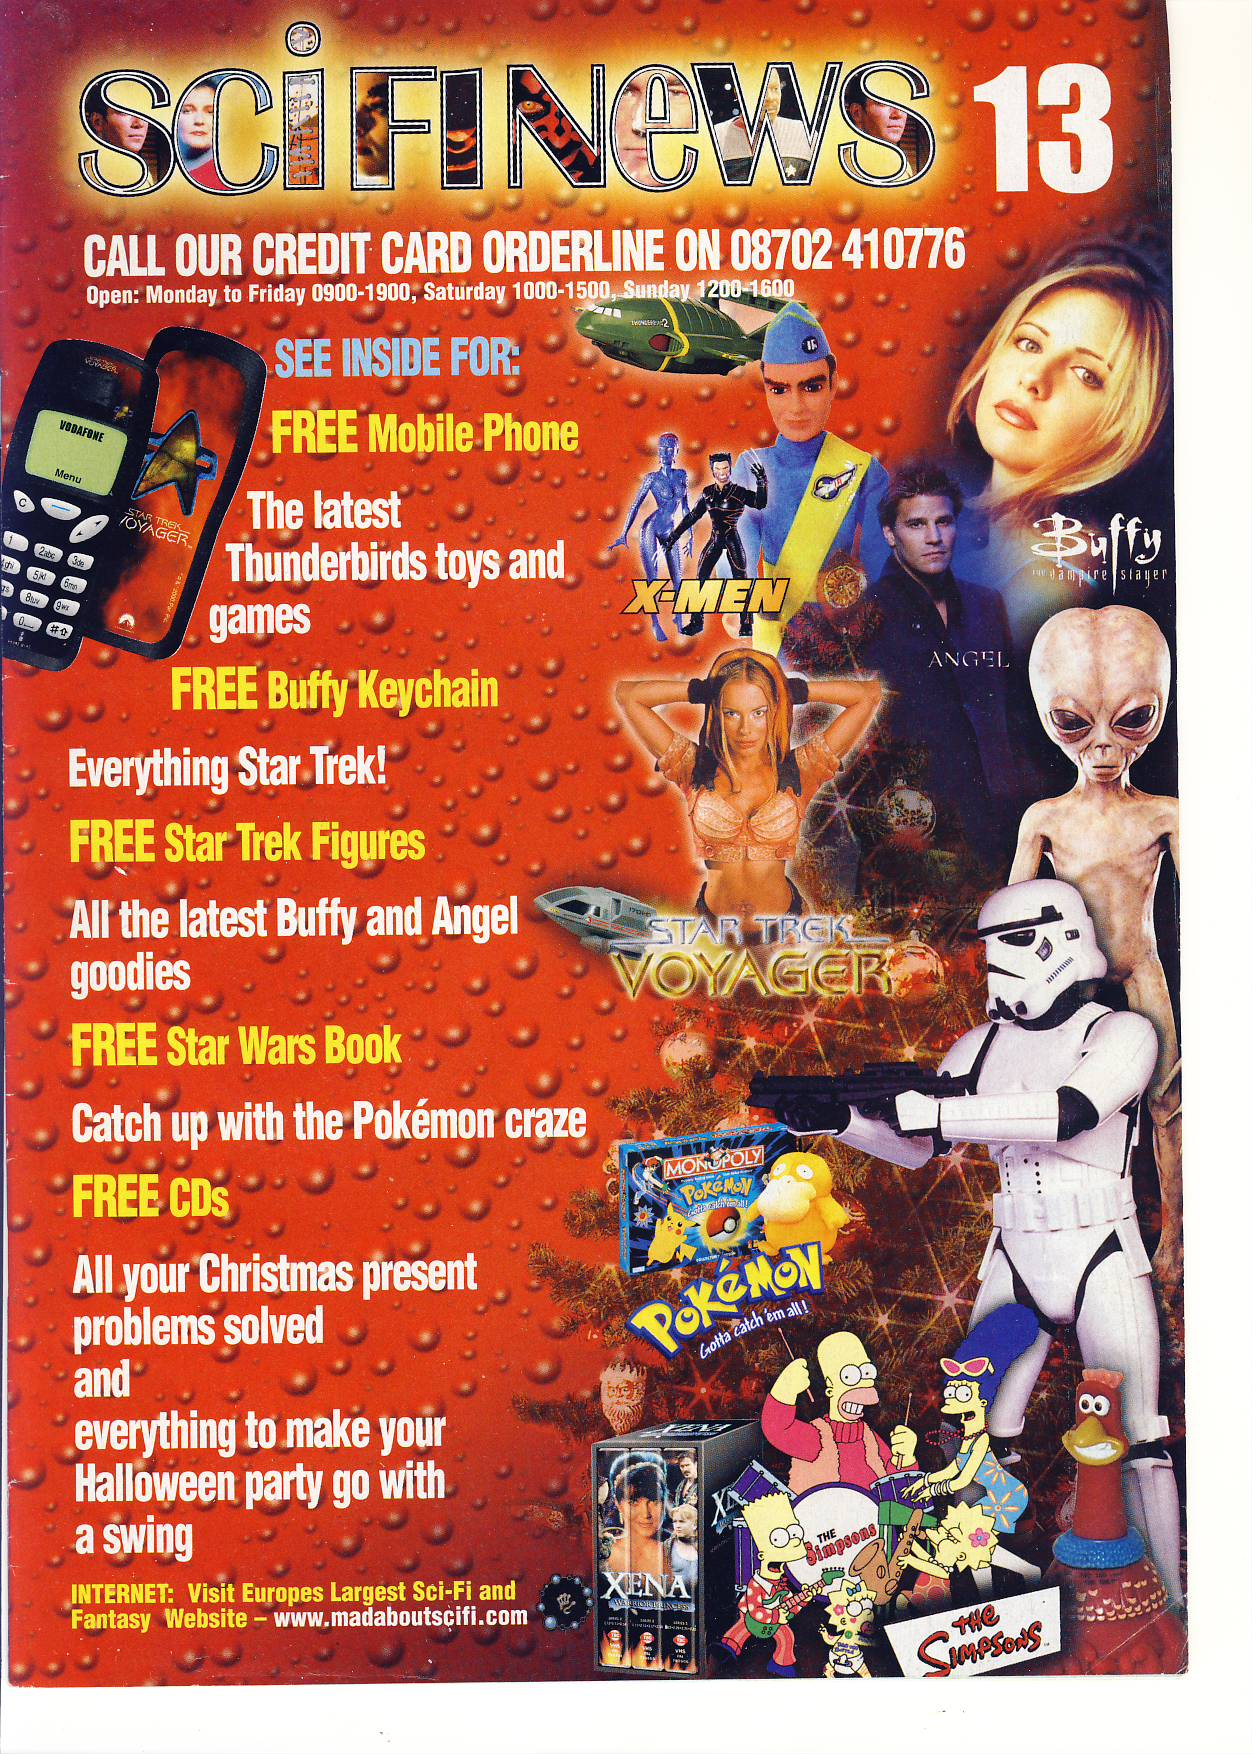 Sci Fi News issue 13 catalogue ref101747 40 pages of products and prices of Television and Science Fiction Merchandise - a pre-owned item in very good condition.